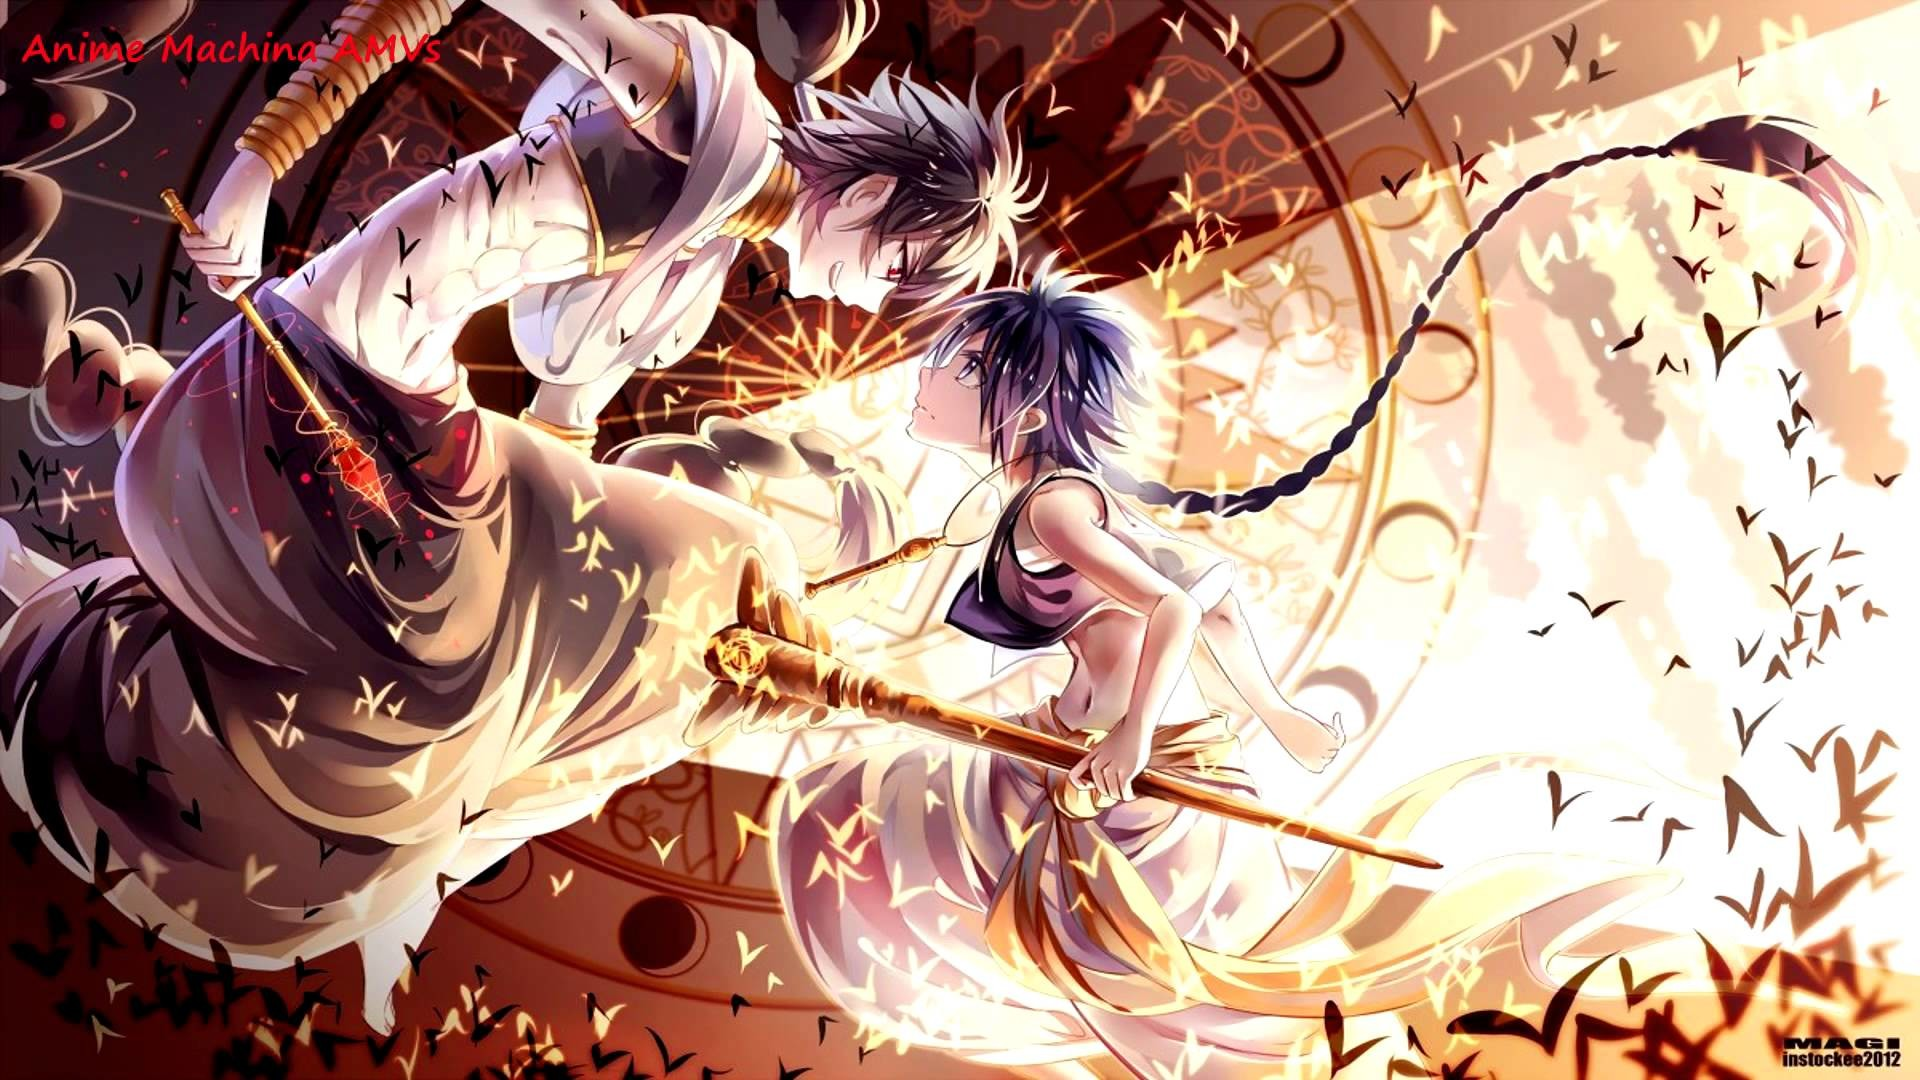 1920x1080 Epic Anime Fighting Wallpapers High Resolution Is Cool Wallpapers